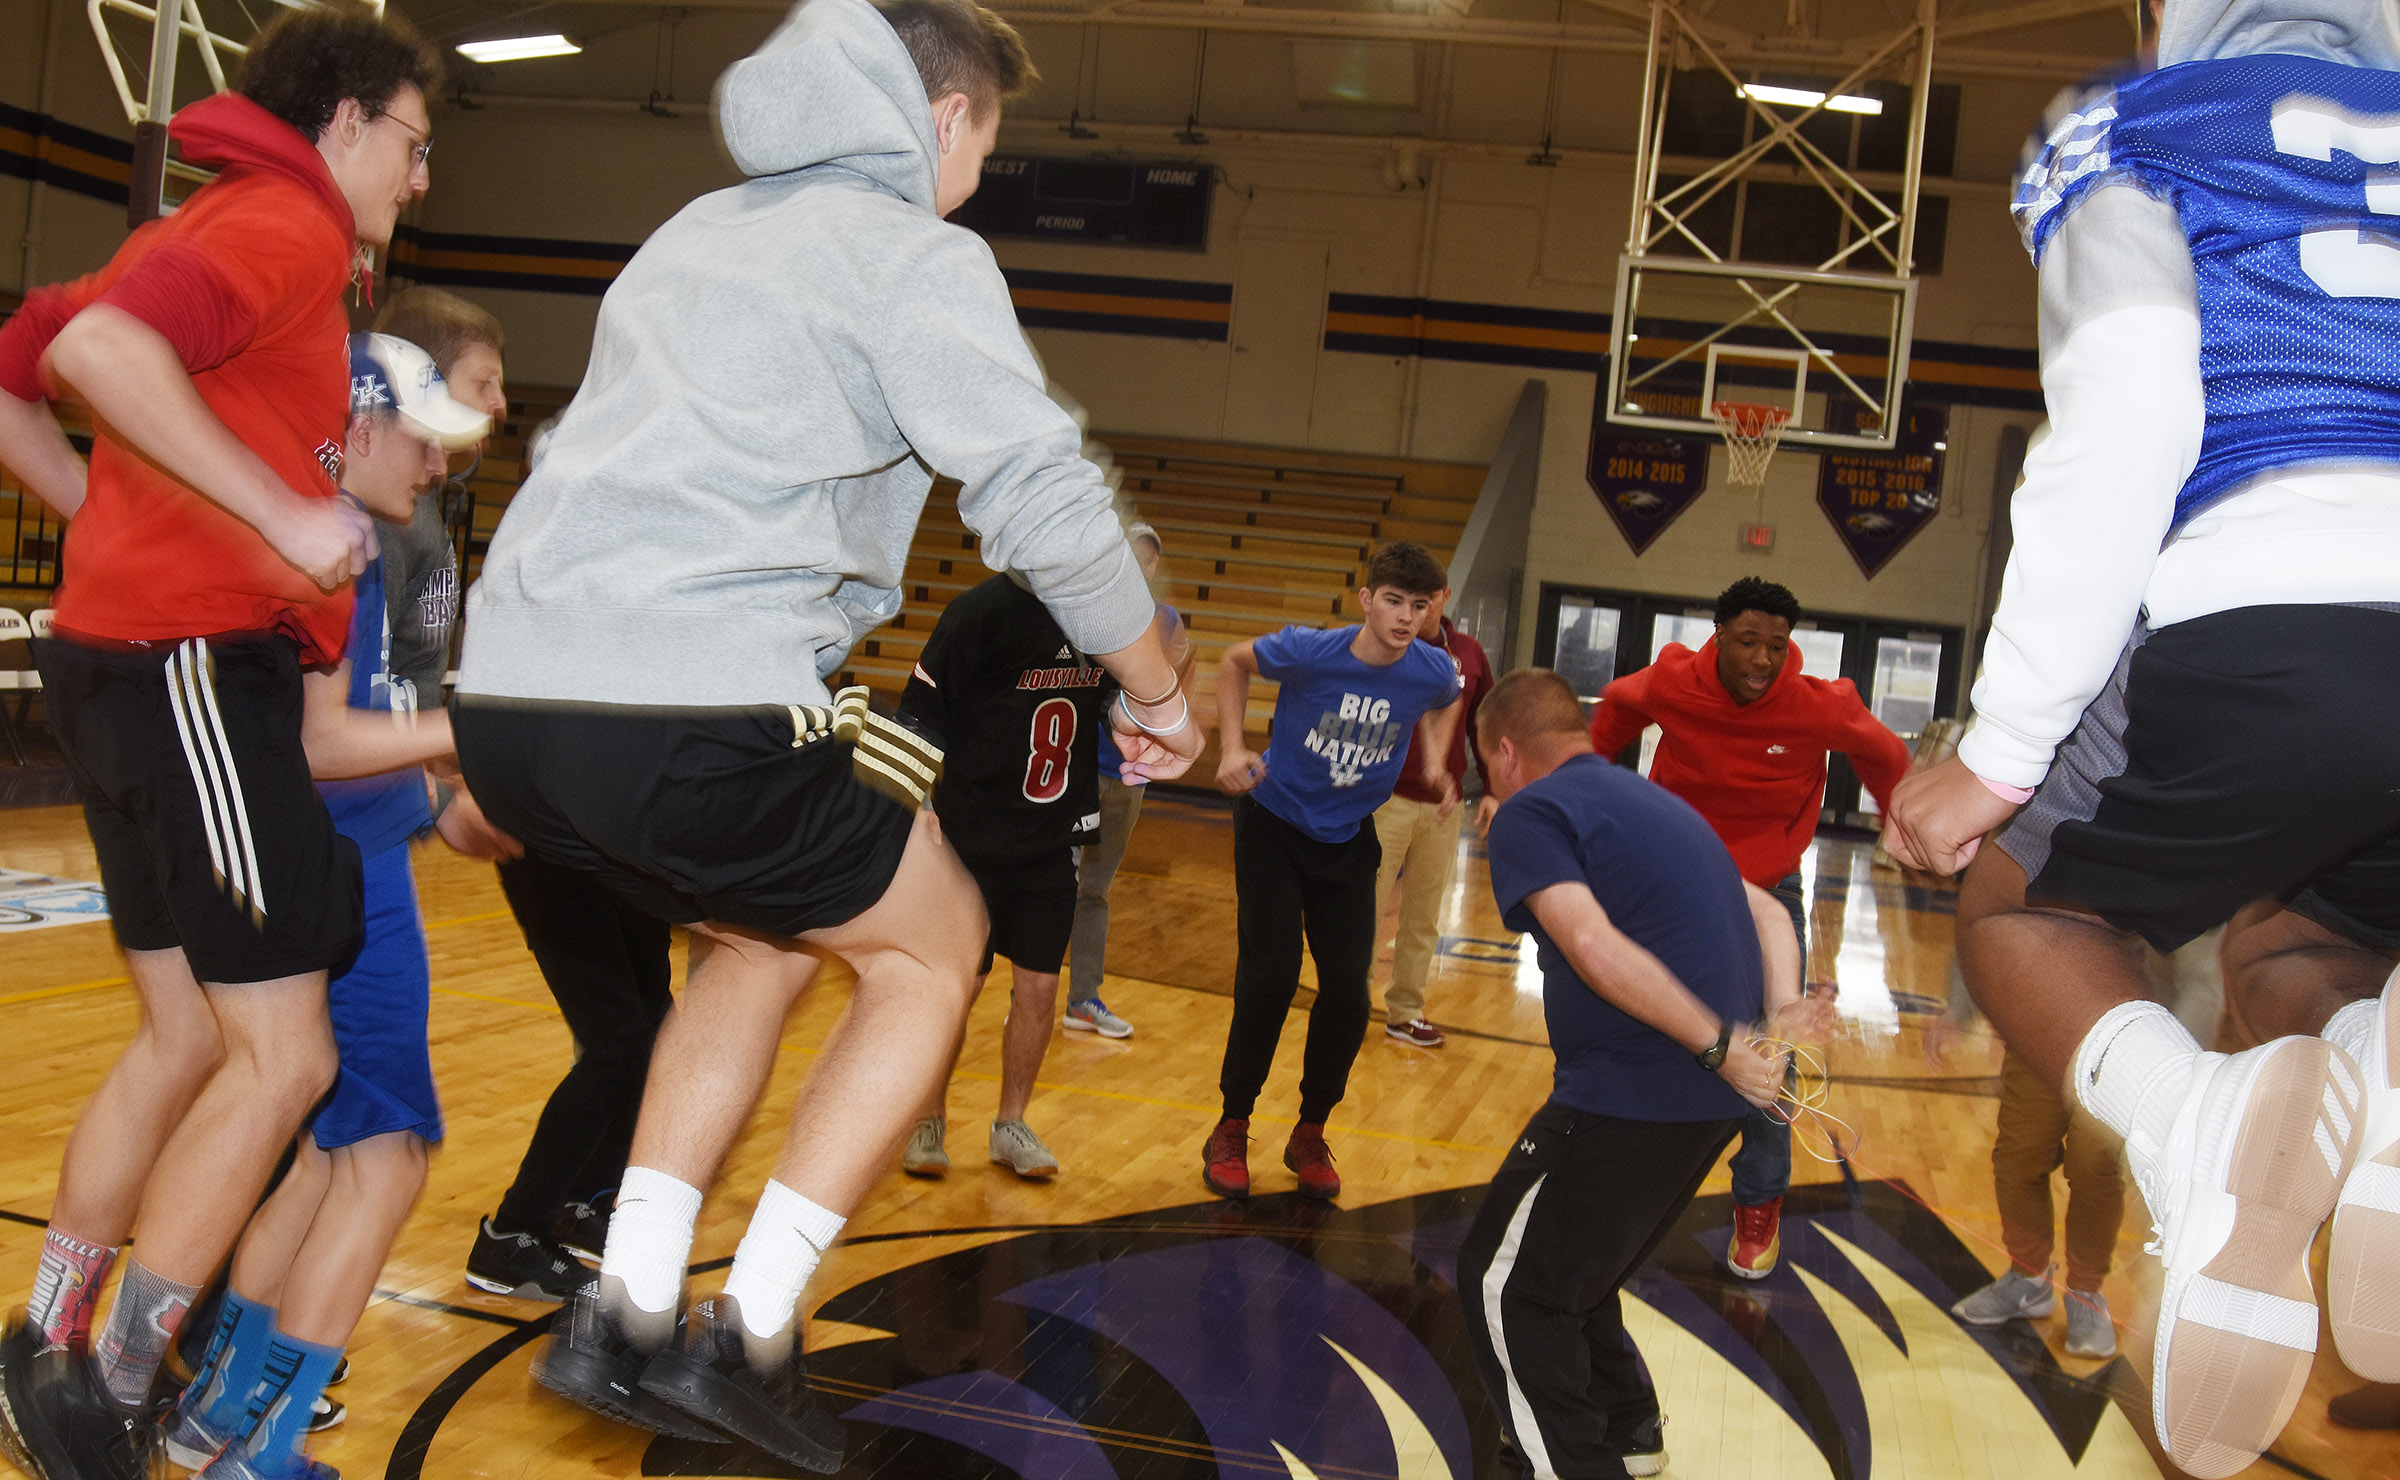 CHS students play the spirit game Jake the Snake.